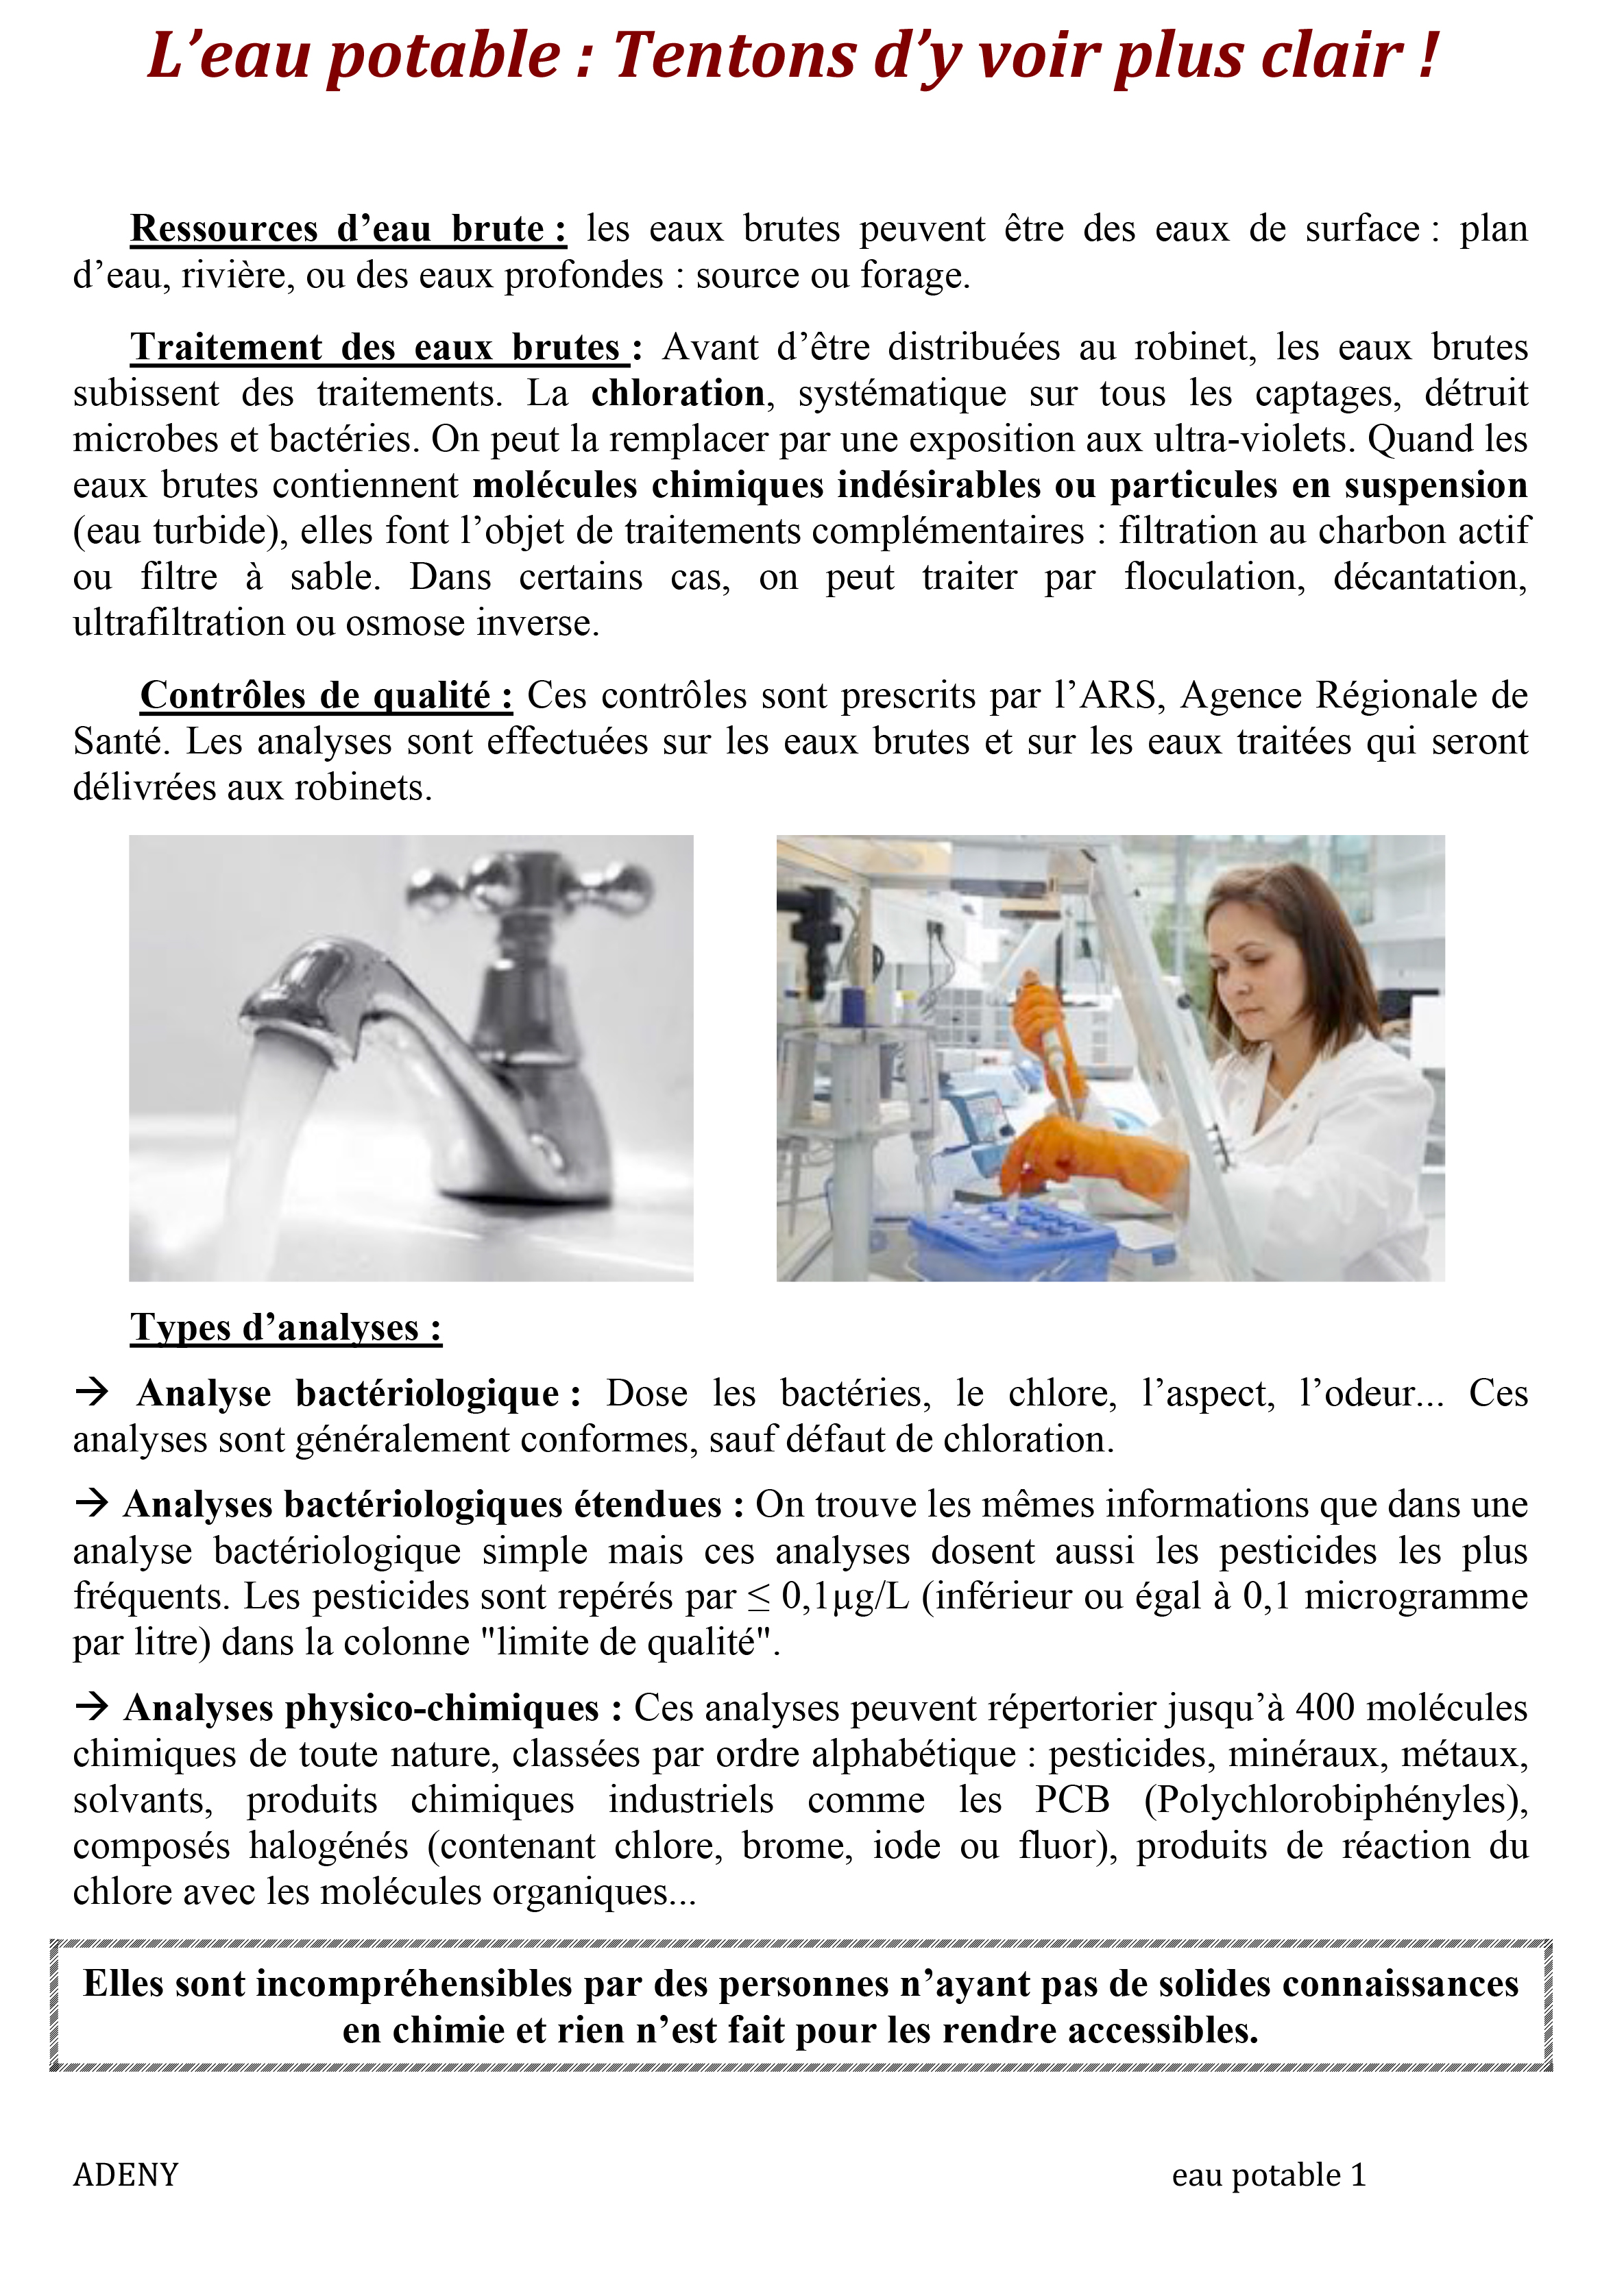 Microsoft Word - L'eau potable1.doc